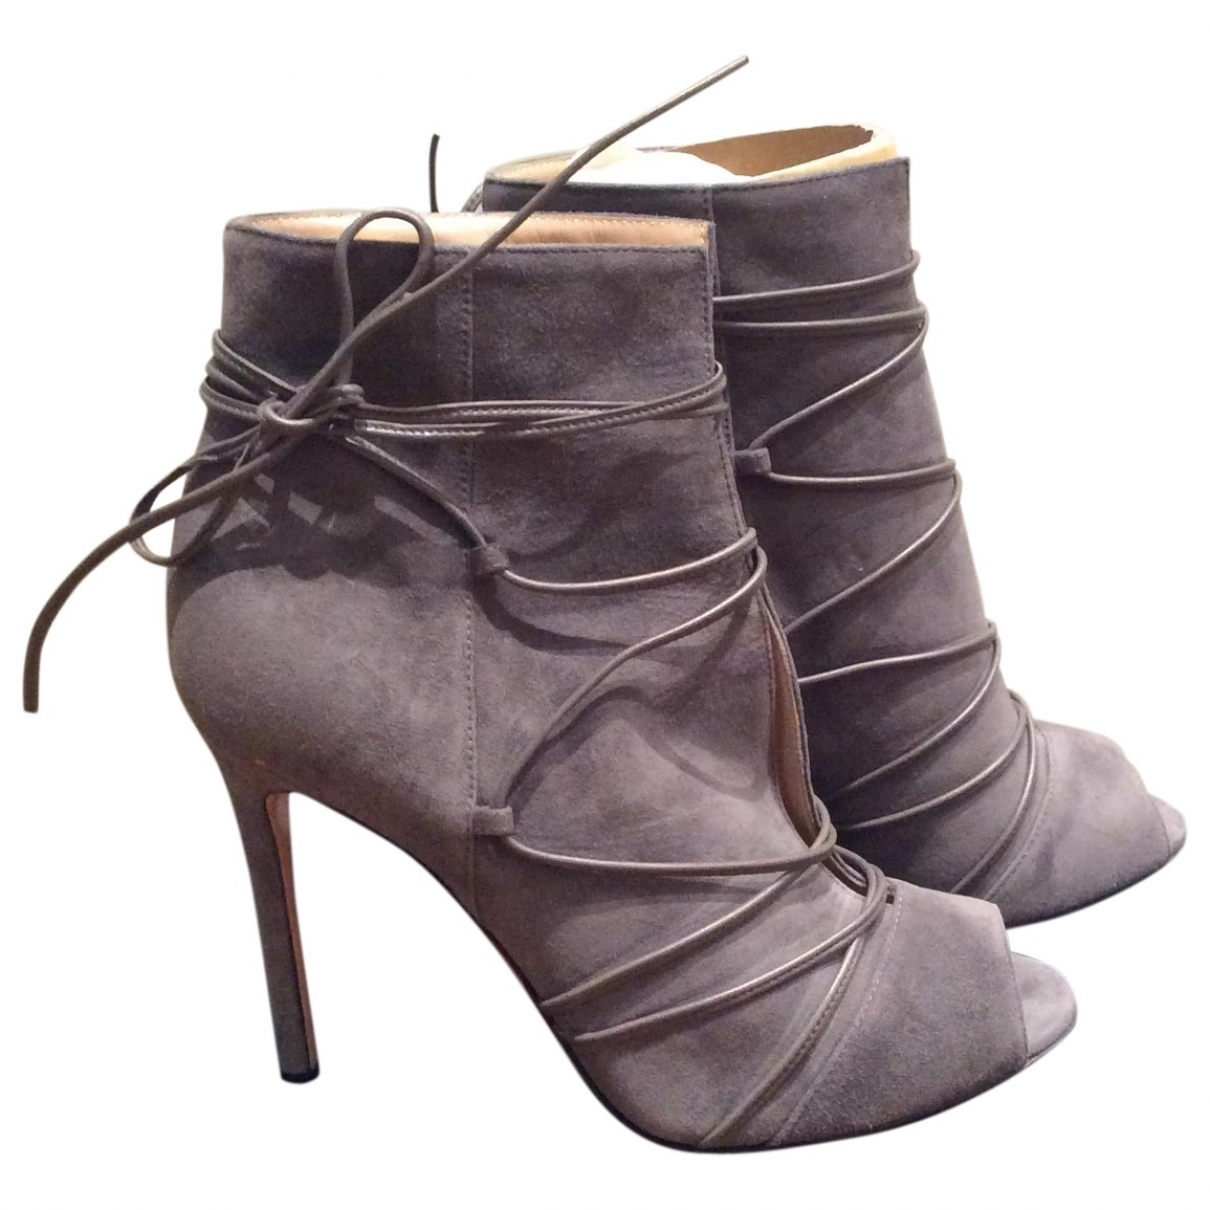 Gianvito Rossi \N Anthracite Suede Ankle boots for Women 38.5 EU